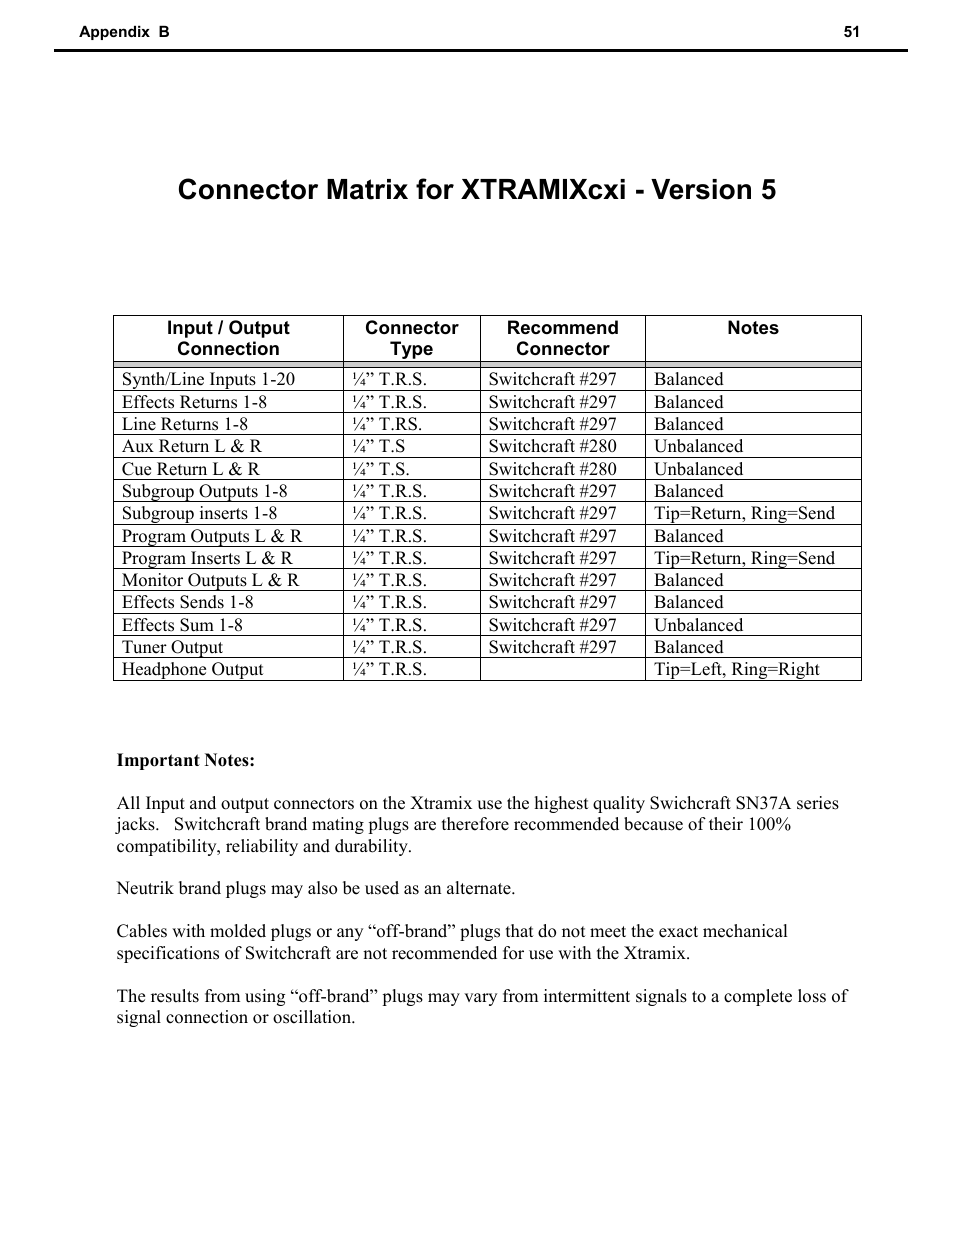 medium resolution of connector matrix for xtramixc xi connector matrix for xtramixcxi version 5 speck electronics xtramix user manual page 56 56